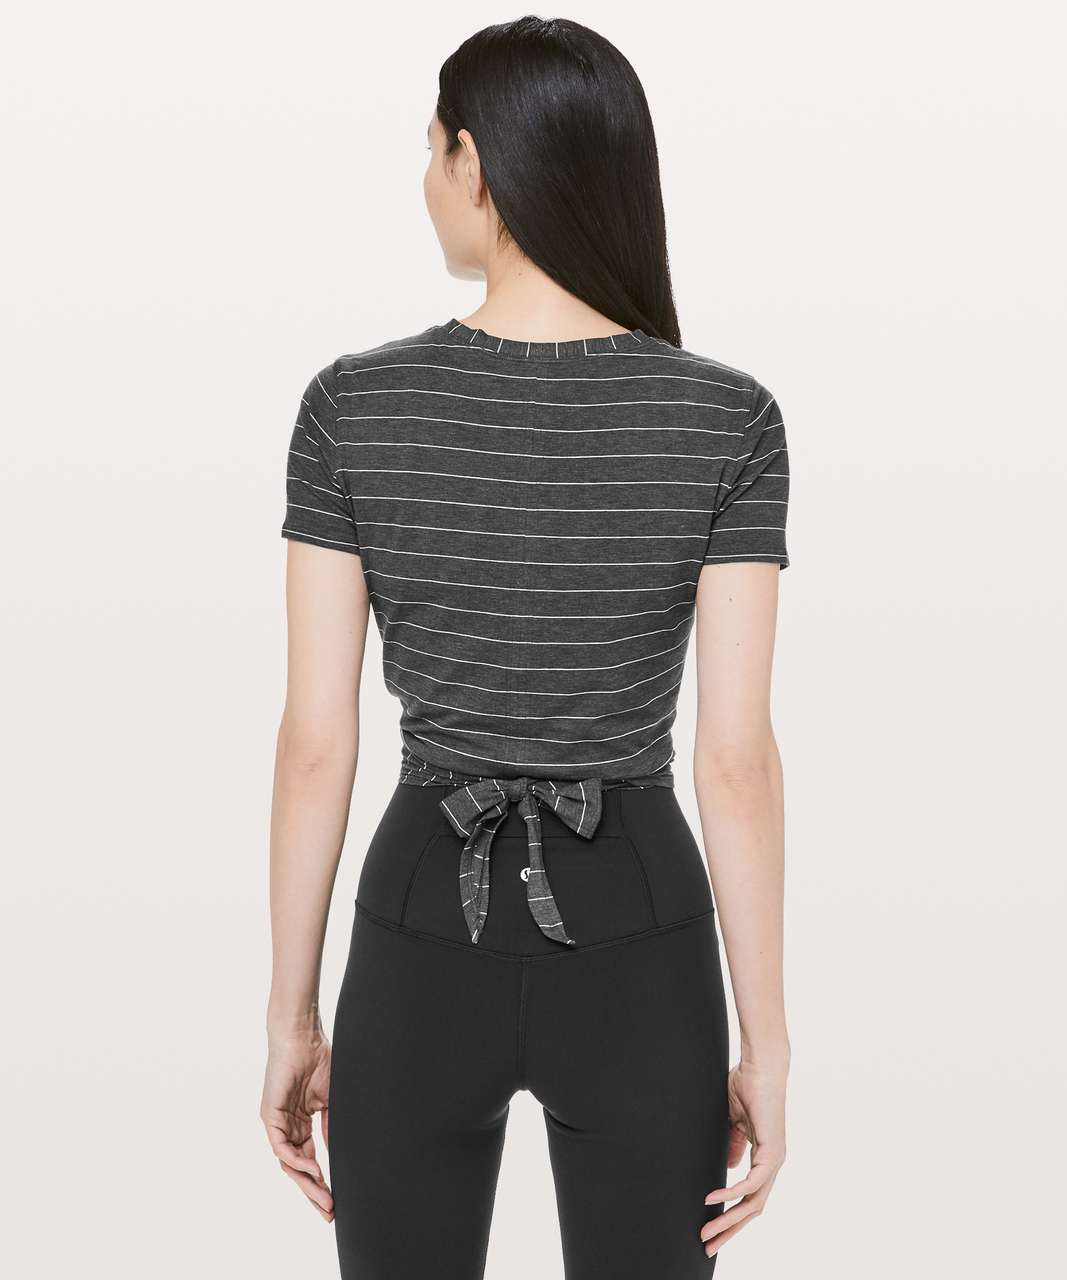 Lululemon Time To Restore Short Sleeve - Short Serve Stripe Heathered Black White